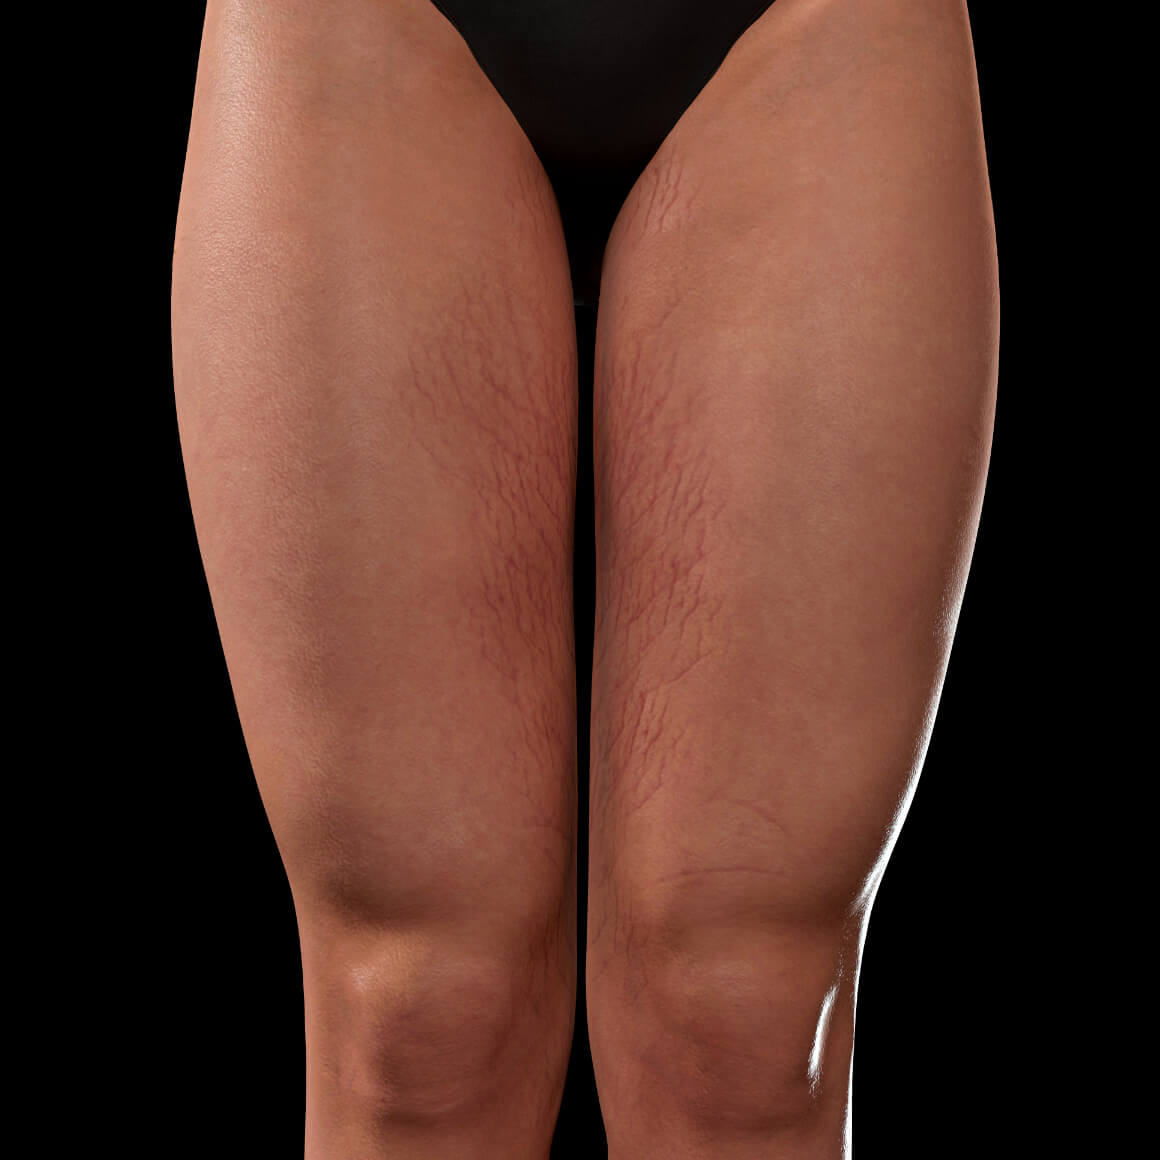 Anterior thighs of a Clinique Chloé female patient showing stretch marks